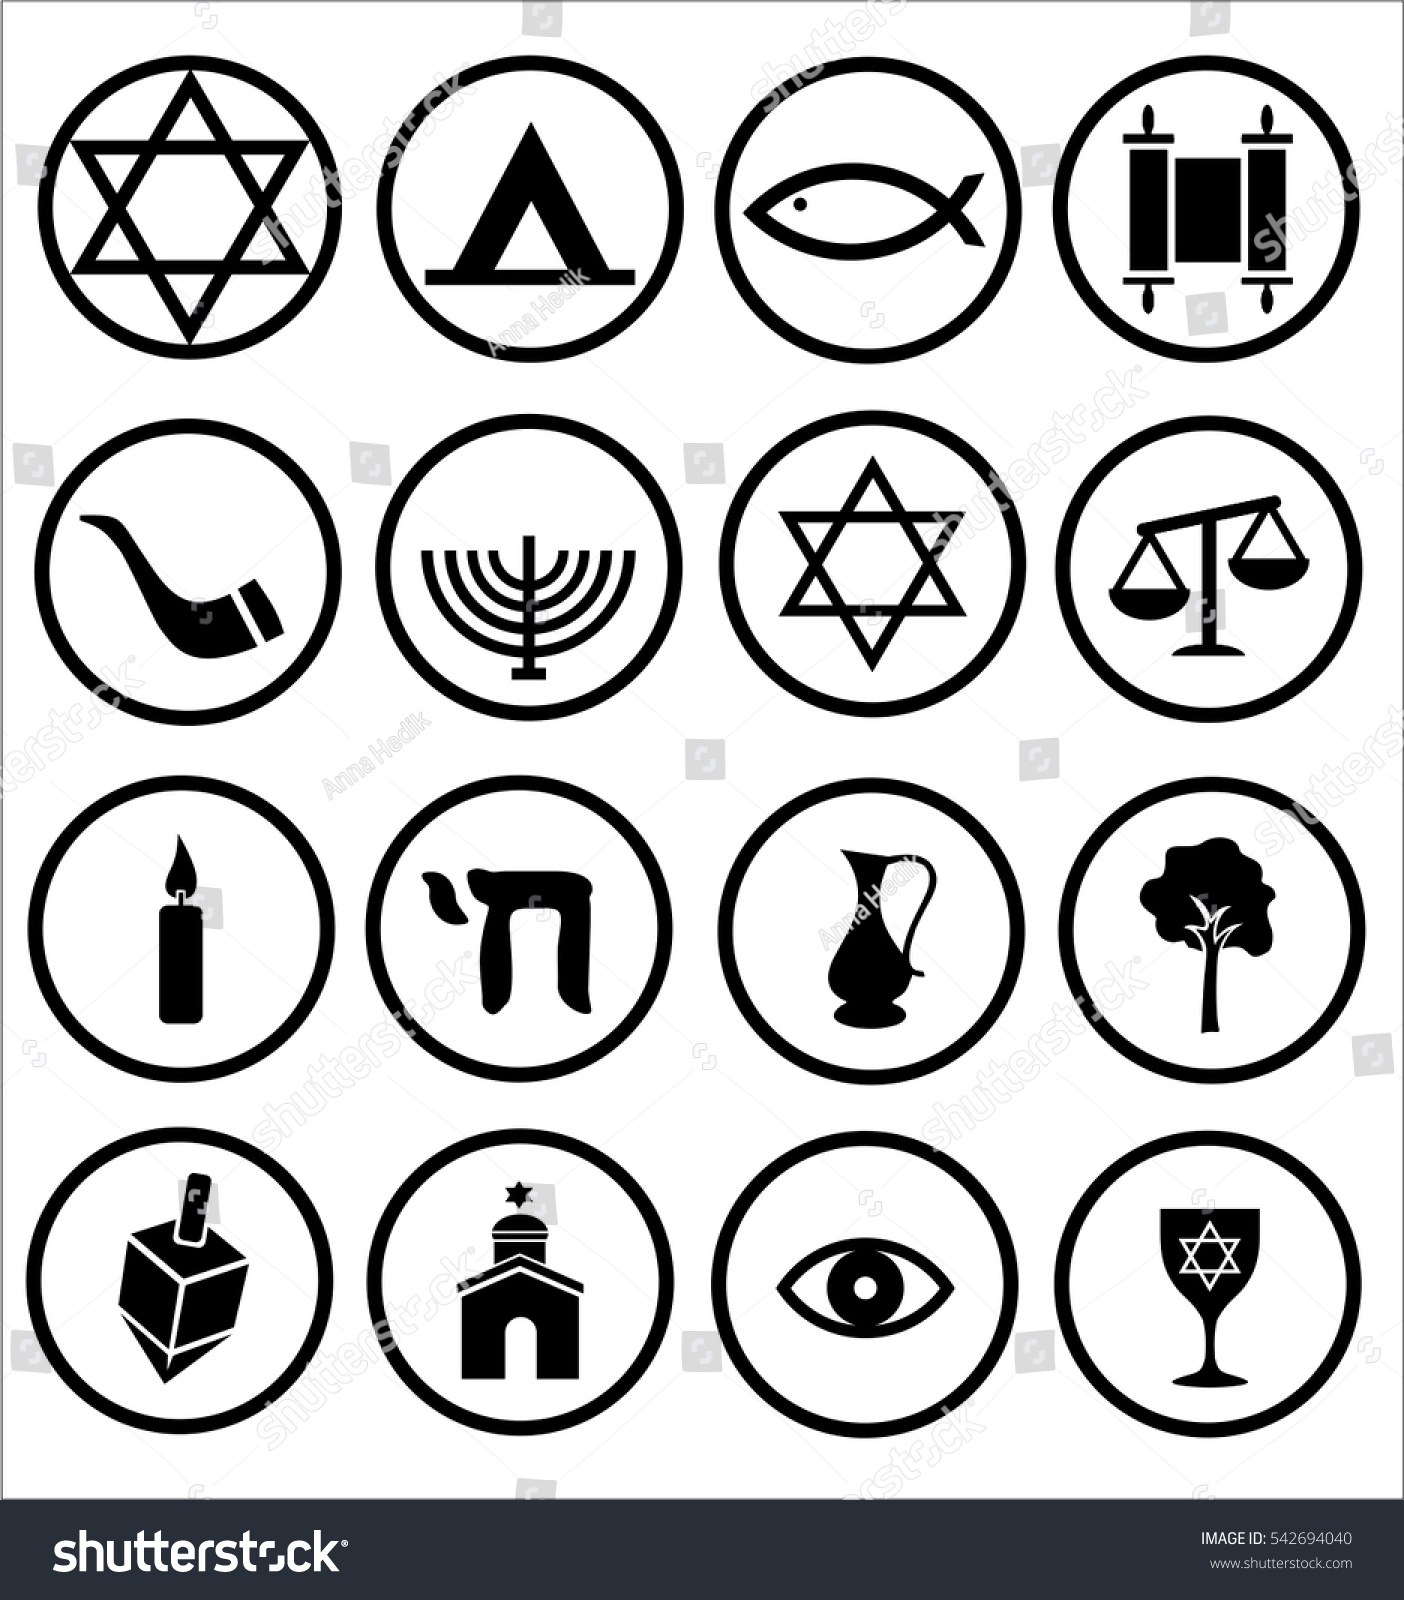 Jewish Religious Icons Vector Symbols Black Stock Vector Royalty